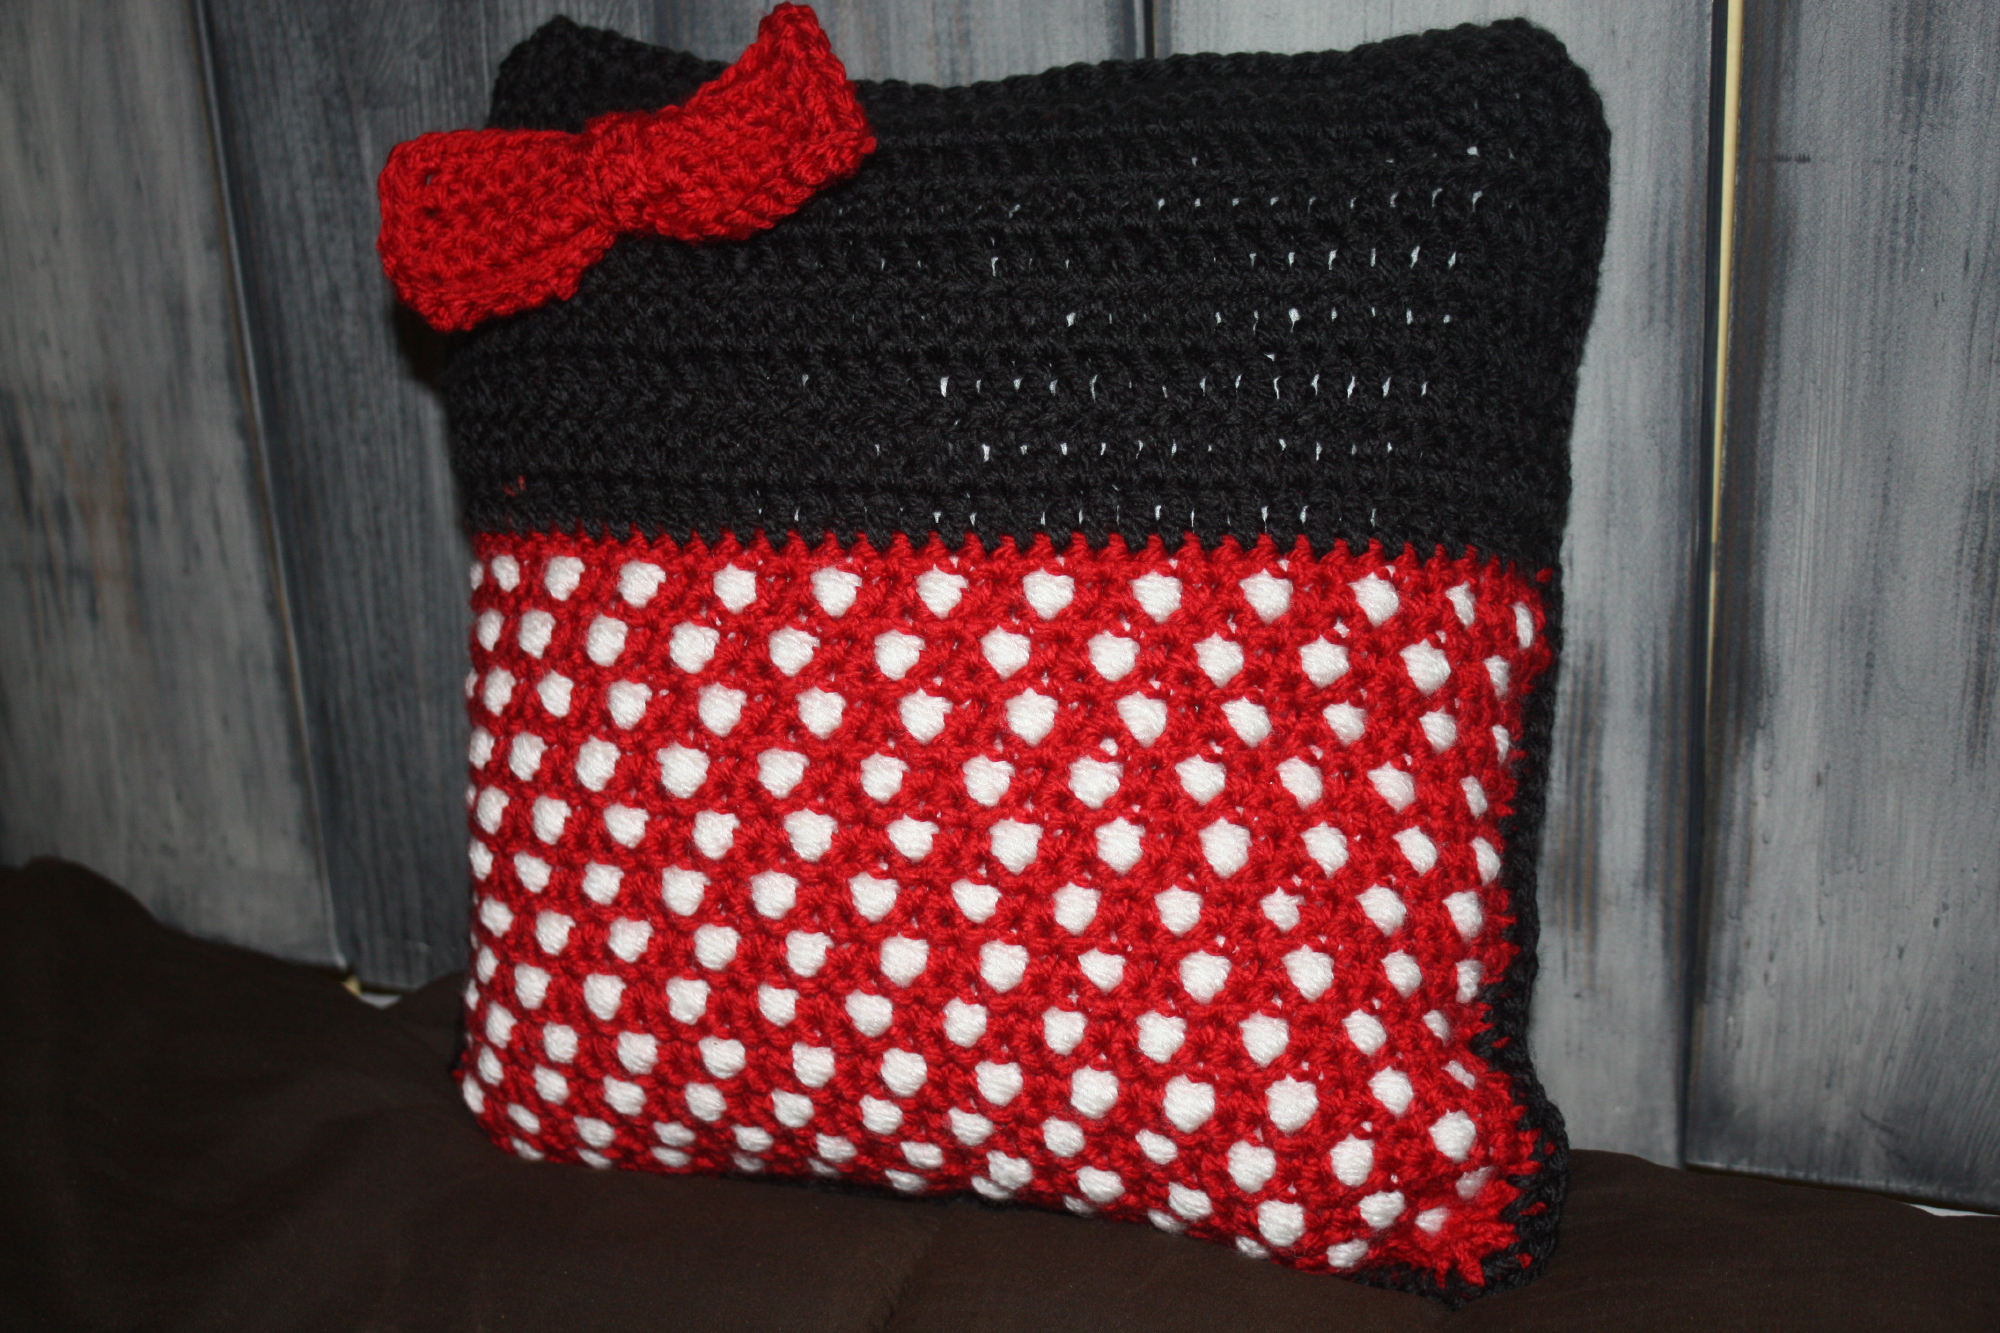 Disney Crochet Projects Archives - Stacy\'s Stitches